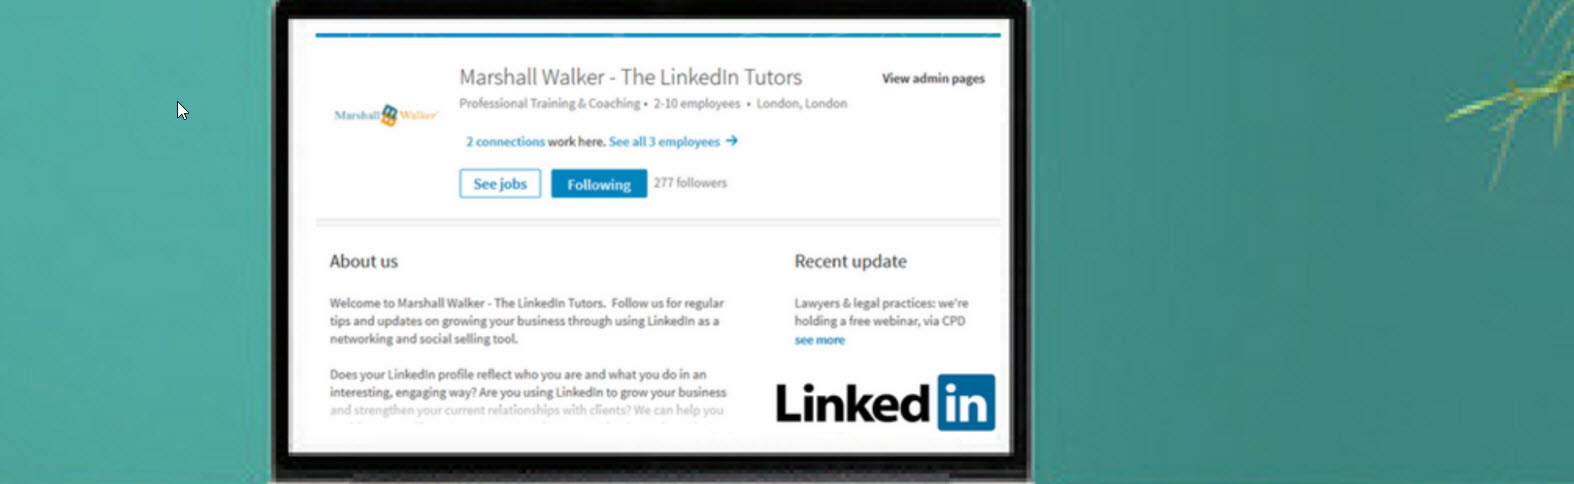 LinkedIn Company Pages \u2013 revamp coming soon Marshall Walker The